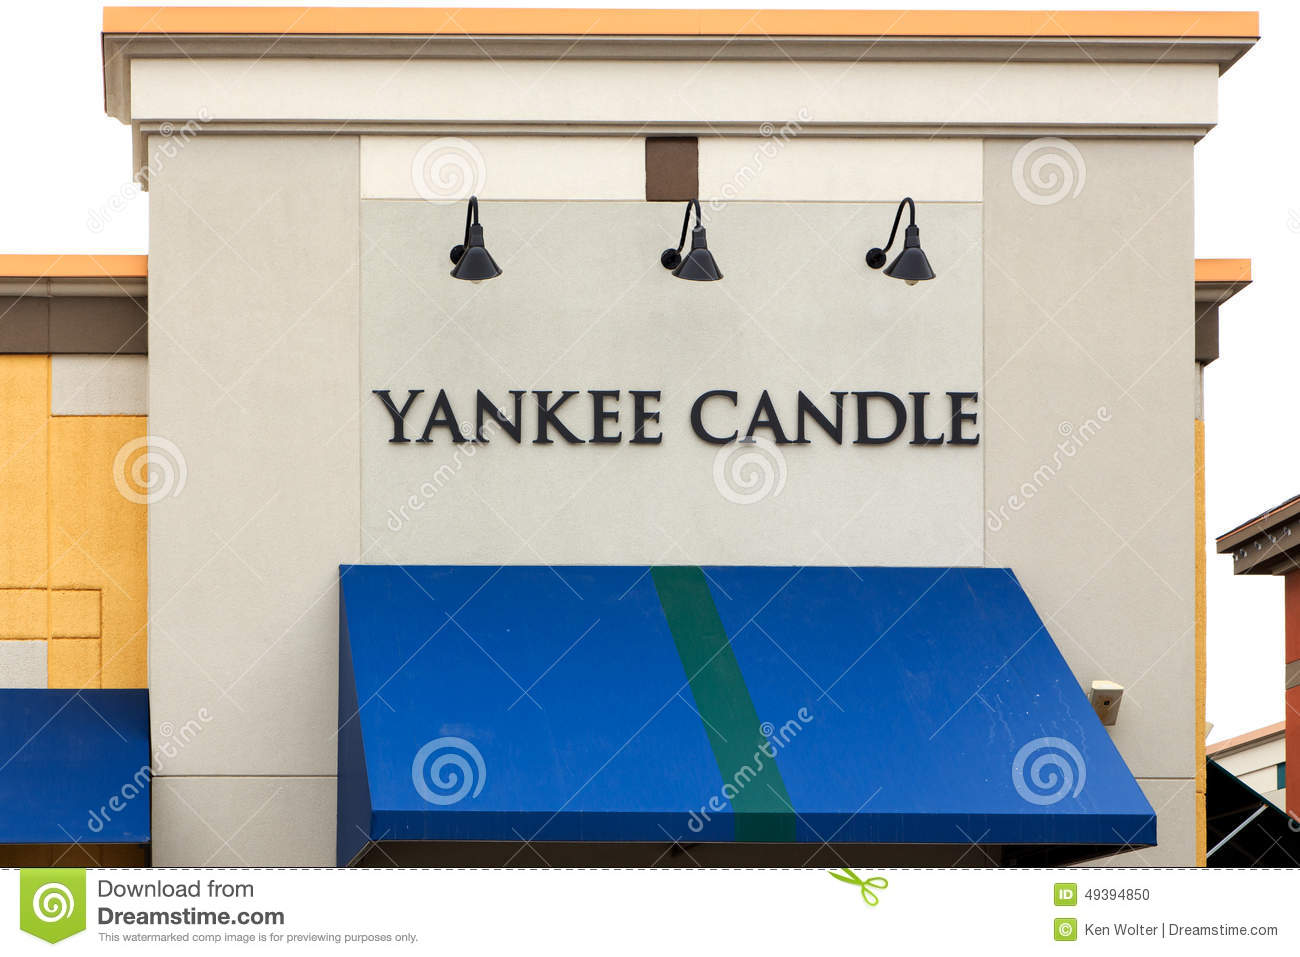 yankee candle business plan